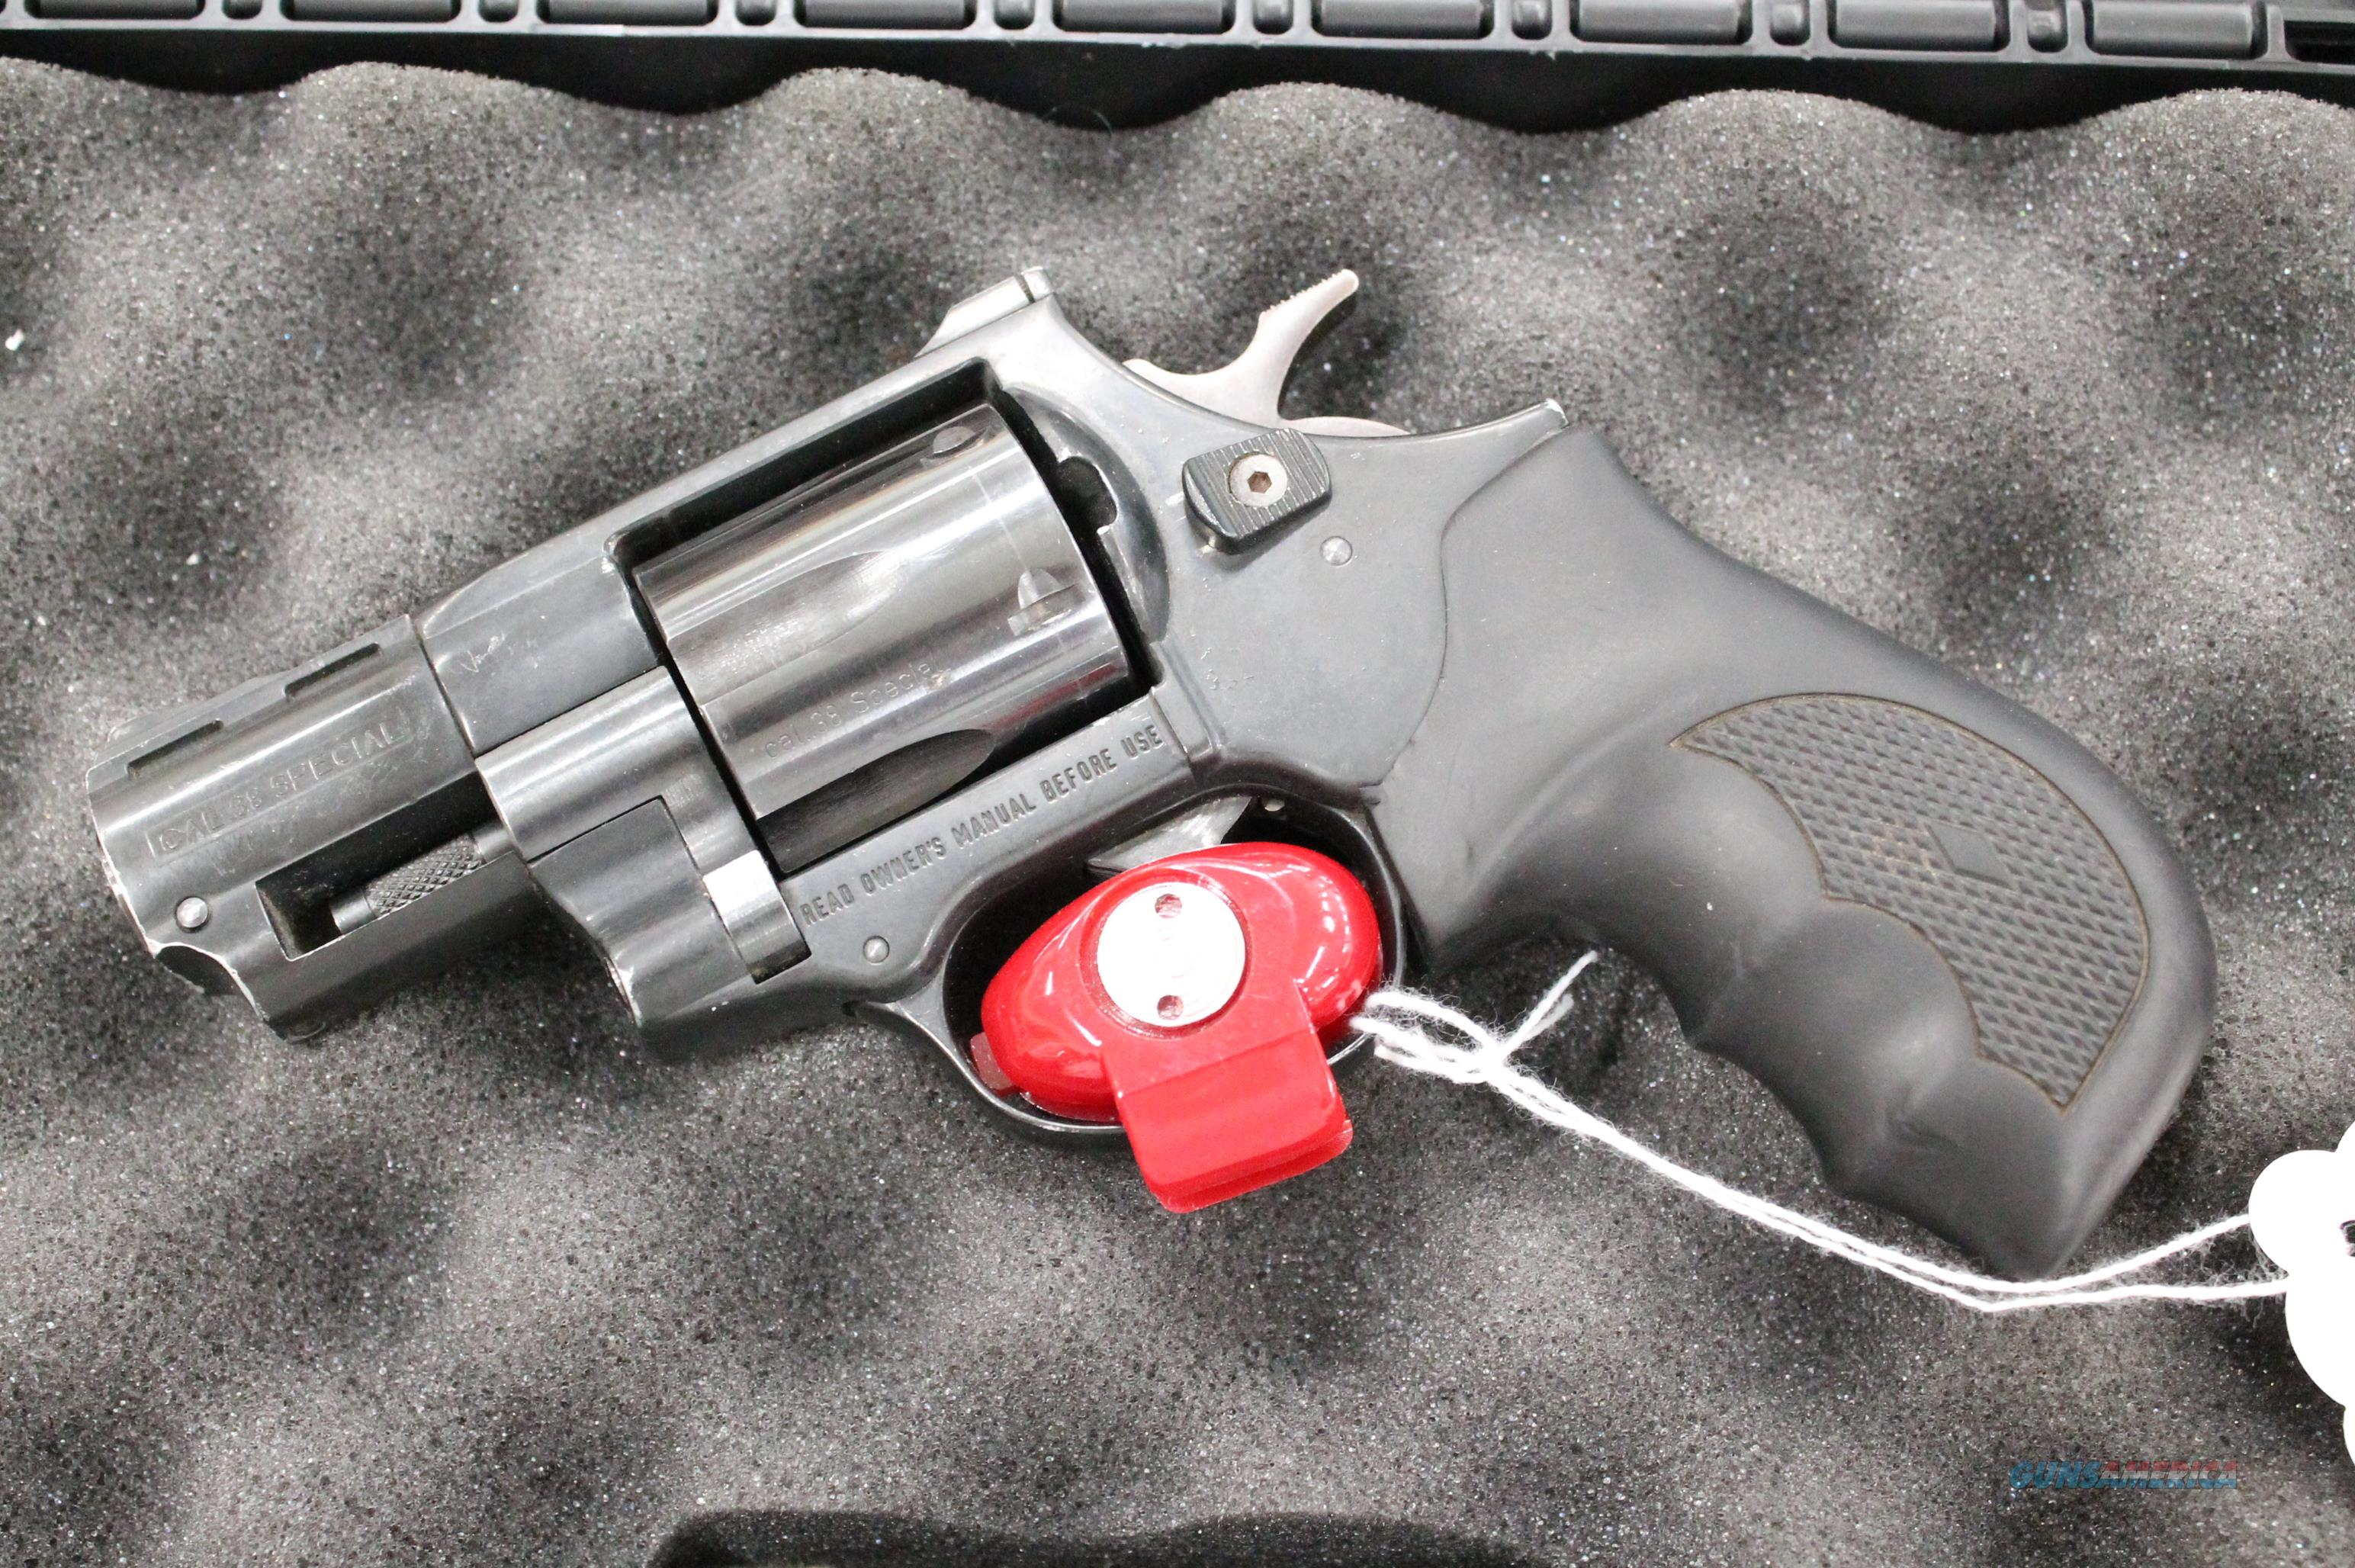 EAA Windicator .38 Special Revolver - Includes Hard Case  Guns > Pistols > EAA Pistols > Other